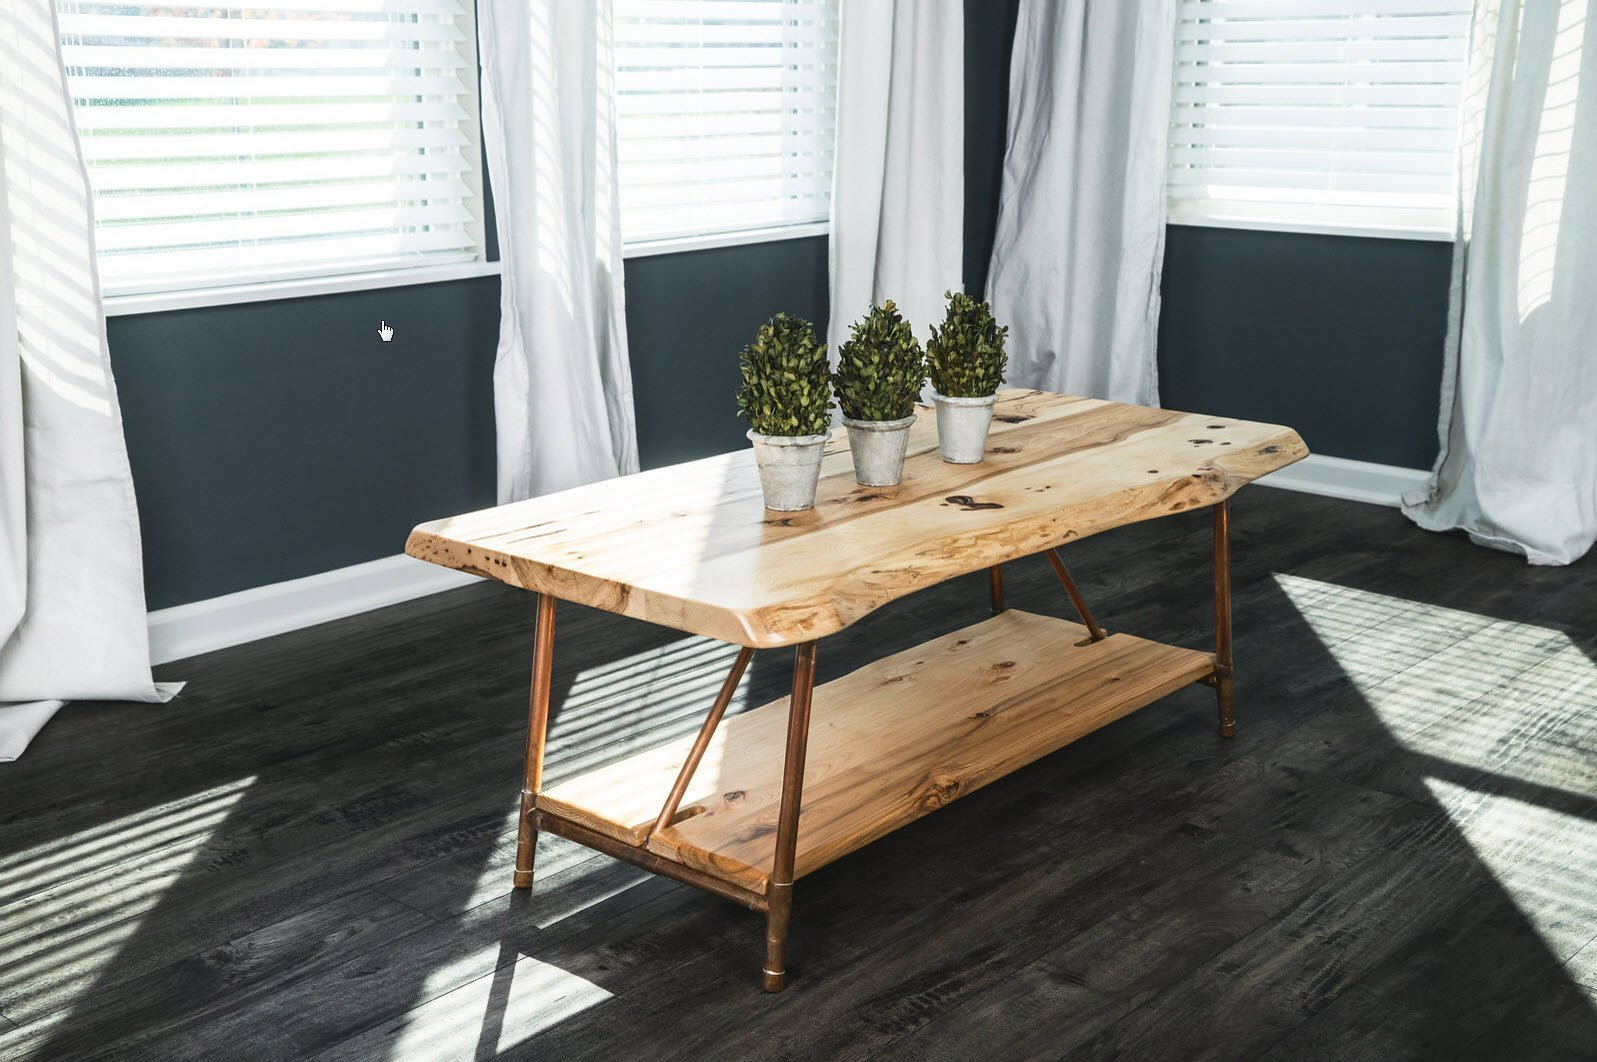 Niangua Furniture Live Edge Hickory Rustic Coffee Table with Copper Pipe Legs - 48'' x 23''